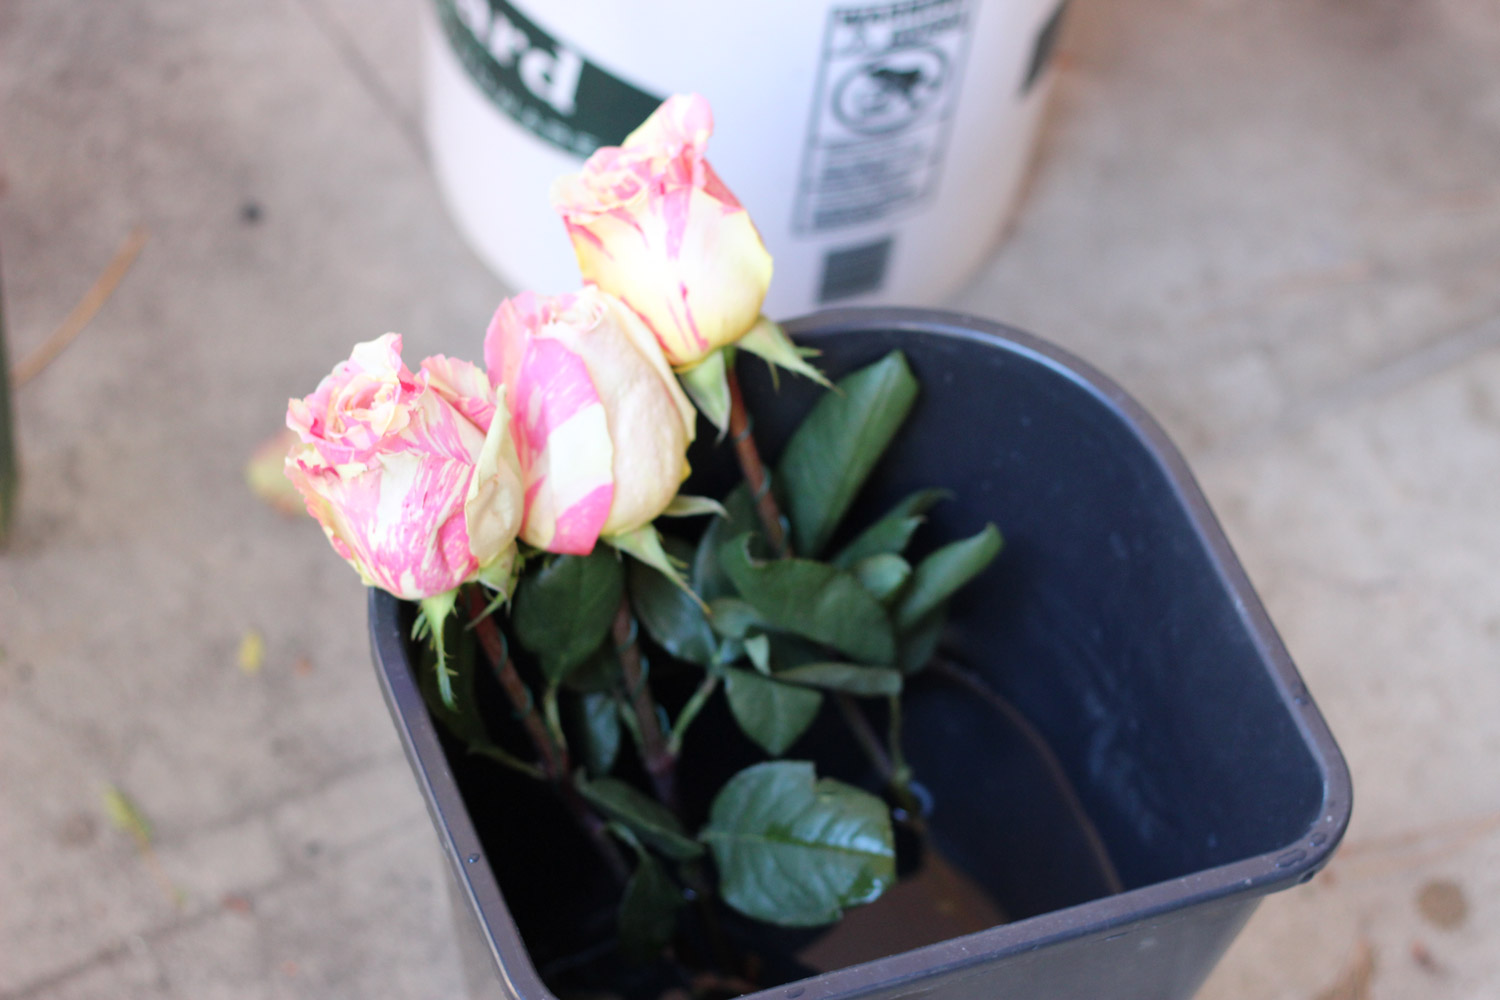 As you finish wiring, put each rose back intowater.